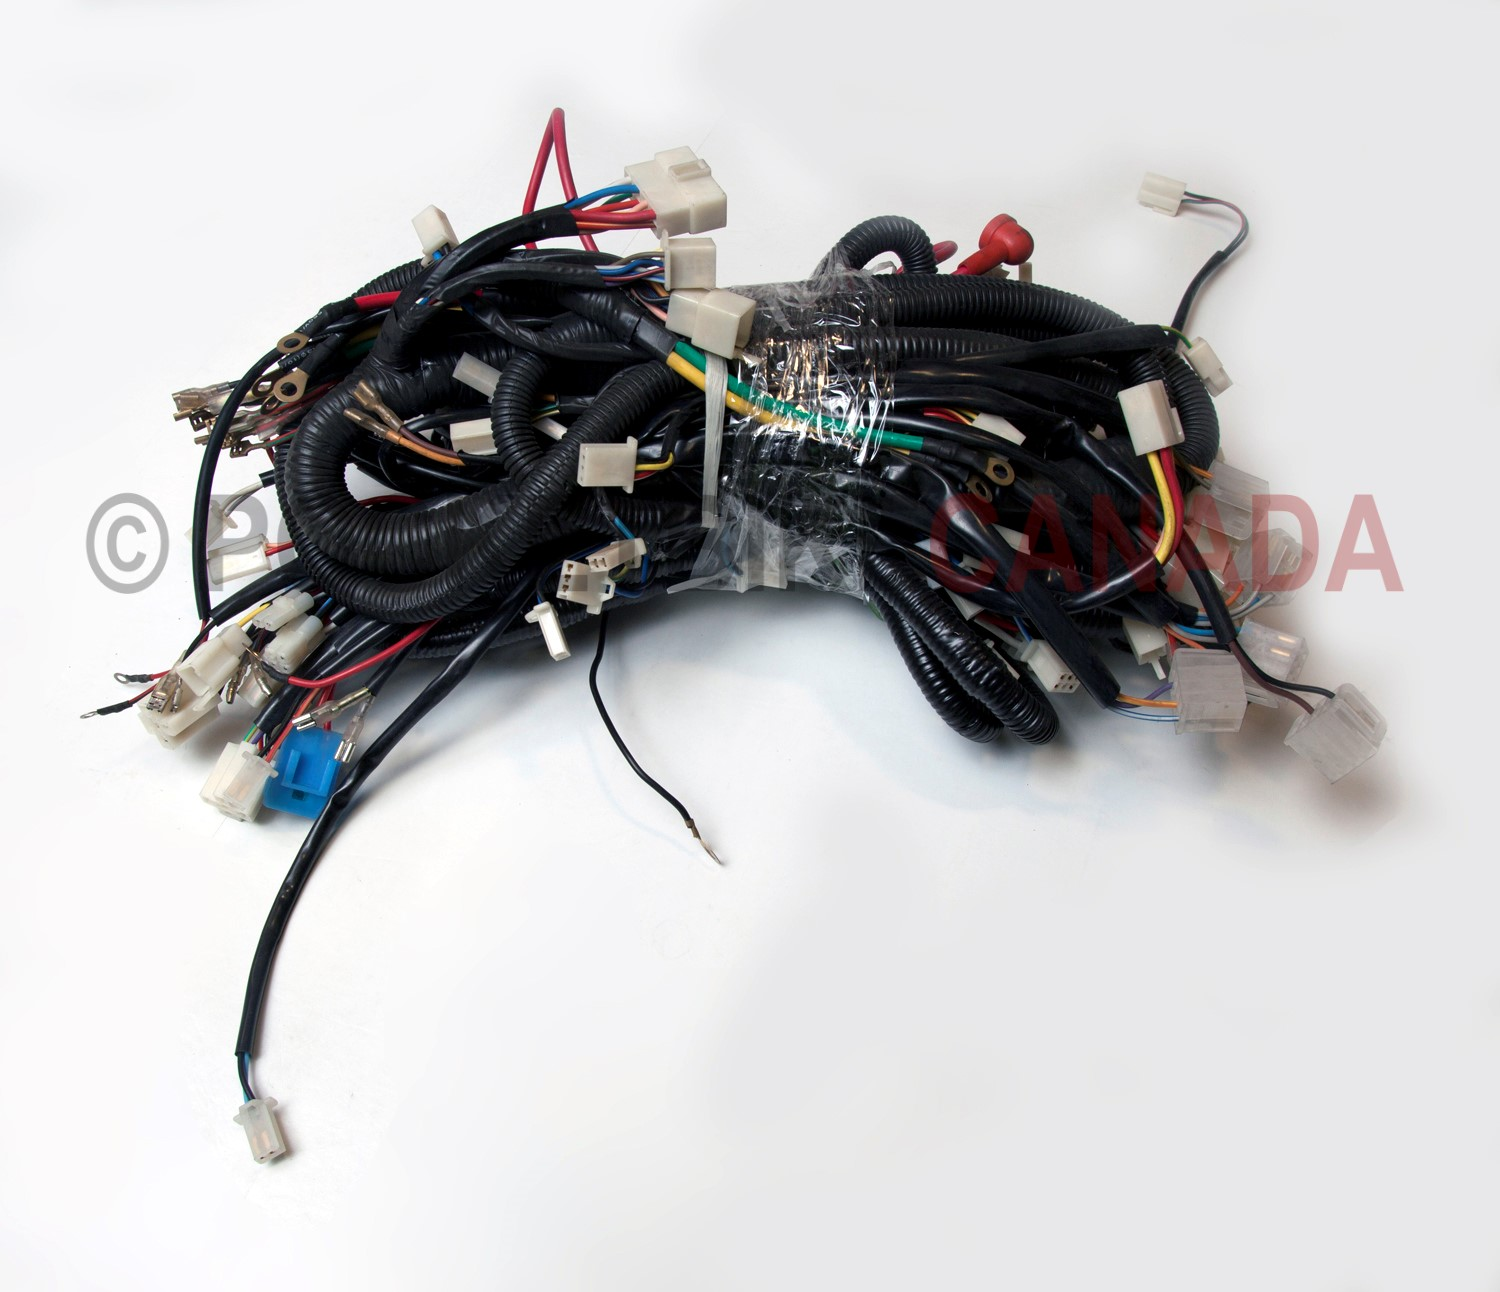 Full Wiring Harness Set - G8070001 - PBC2436GP - Pocket Bike Canada on engine harness, amp bypass harness, electrical harness, cable harness, pony harness, safety harness, maxi-seal harness, alpine stereo harness, pet harness, dog harness, obd0 to obd1 conversion harness, oxygen sensor extension harness, radio harness, fall protection harness, nakamichi harness, suspension harness, battery harness,